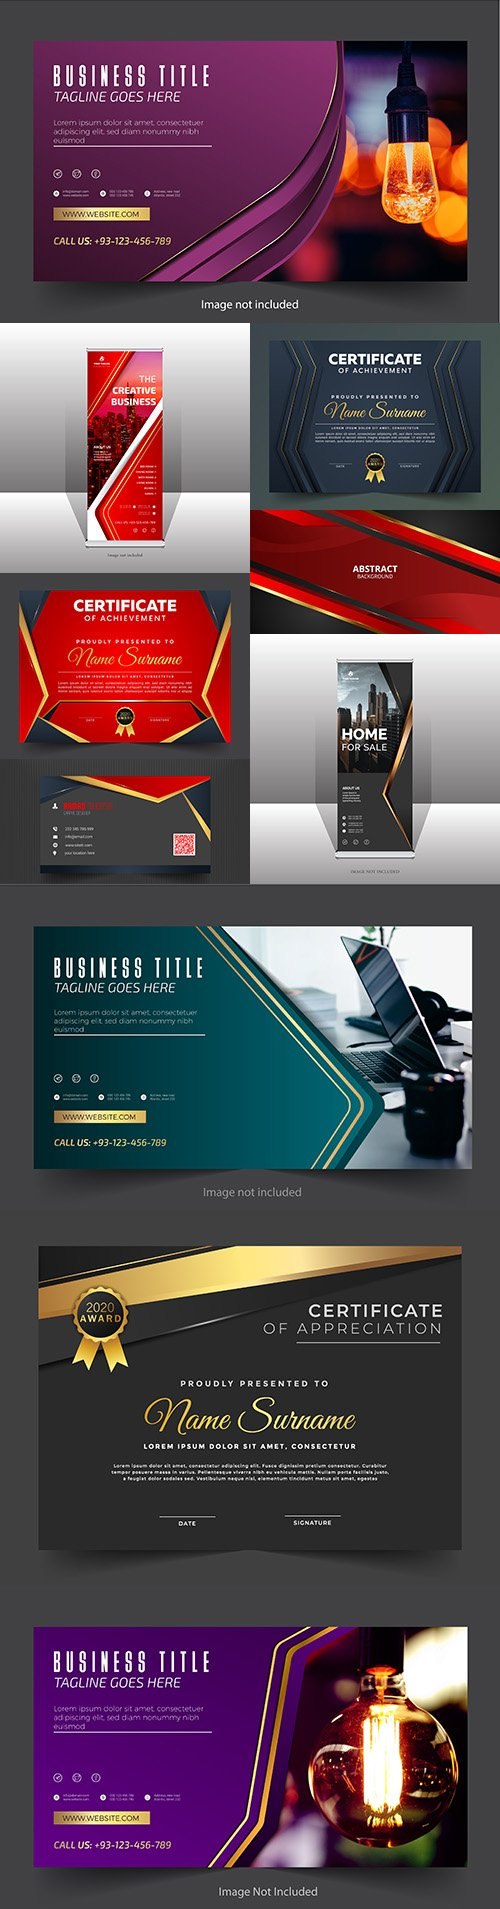 Professional and elegant business banner with certification and background